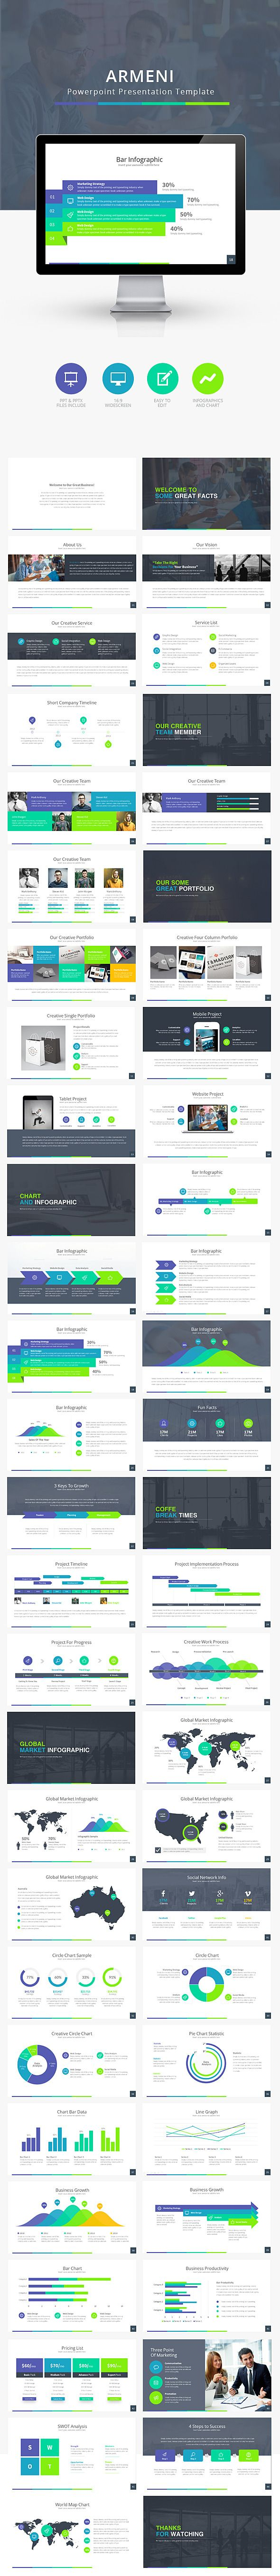 Armeni Powerpoint Presentation Template  (Powerpoint Templates) Preview